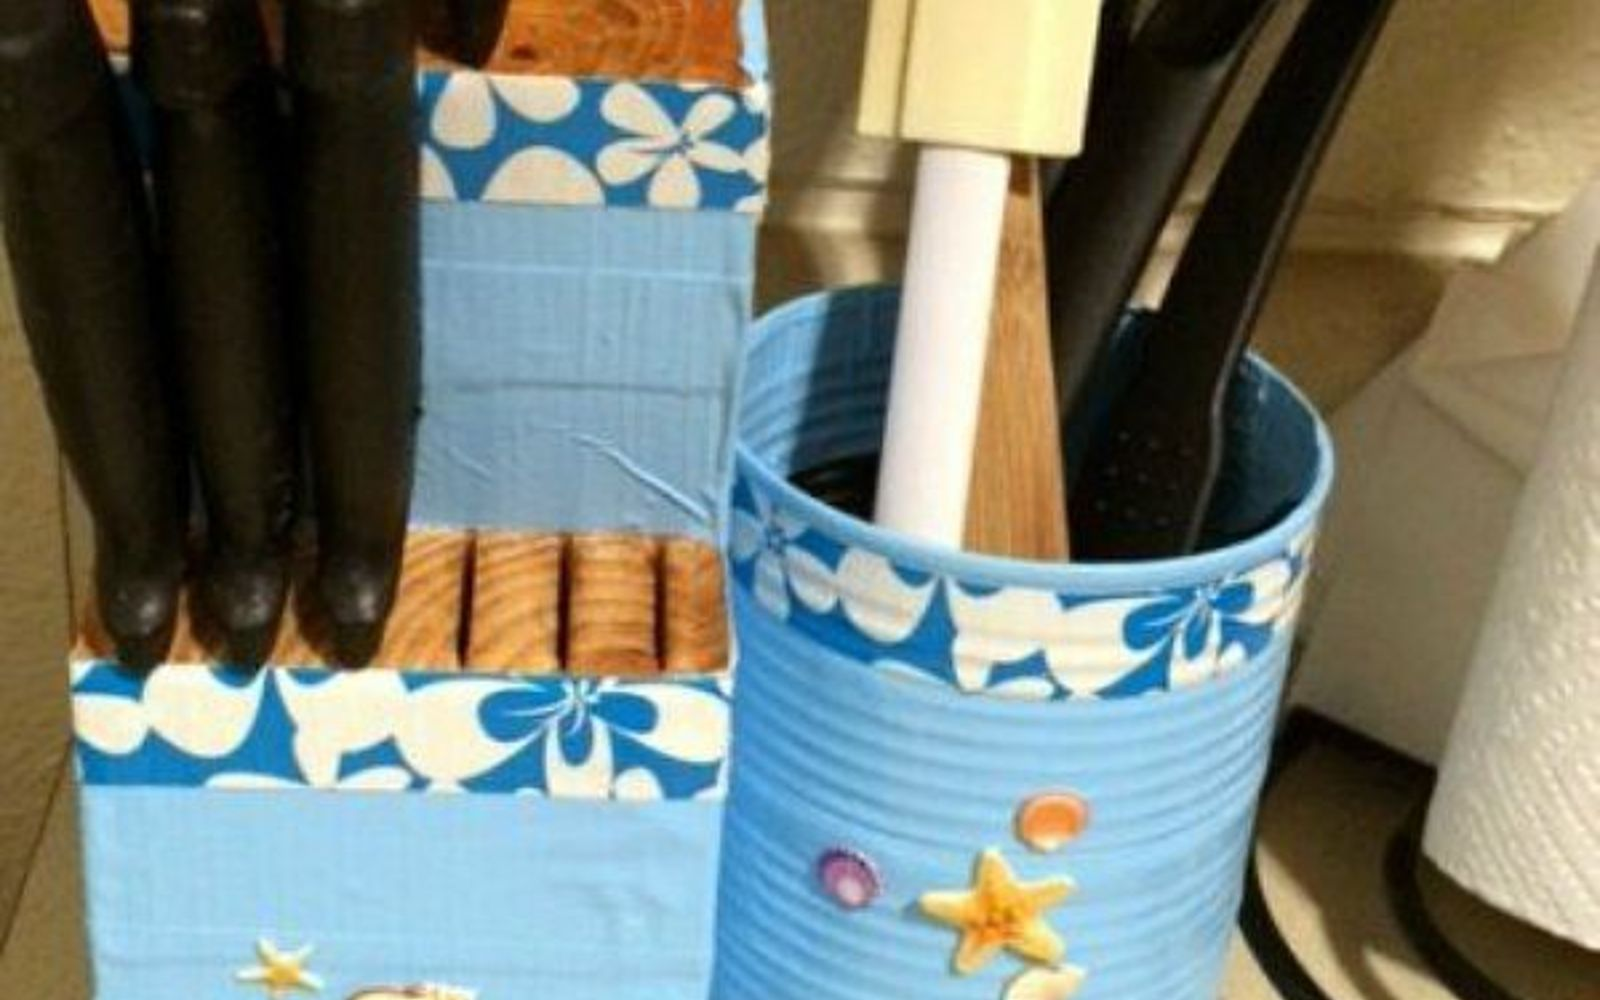 s 11 upcycles so simple you ll wonder why you ve never thought of them, crafts, repurposing upcycling, Organize Your Kitchen With Cans